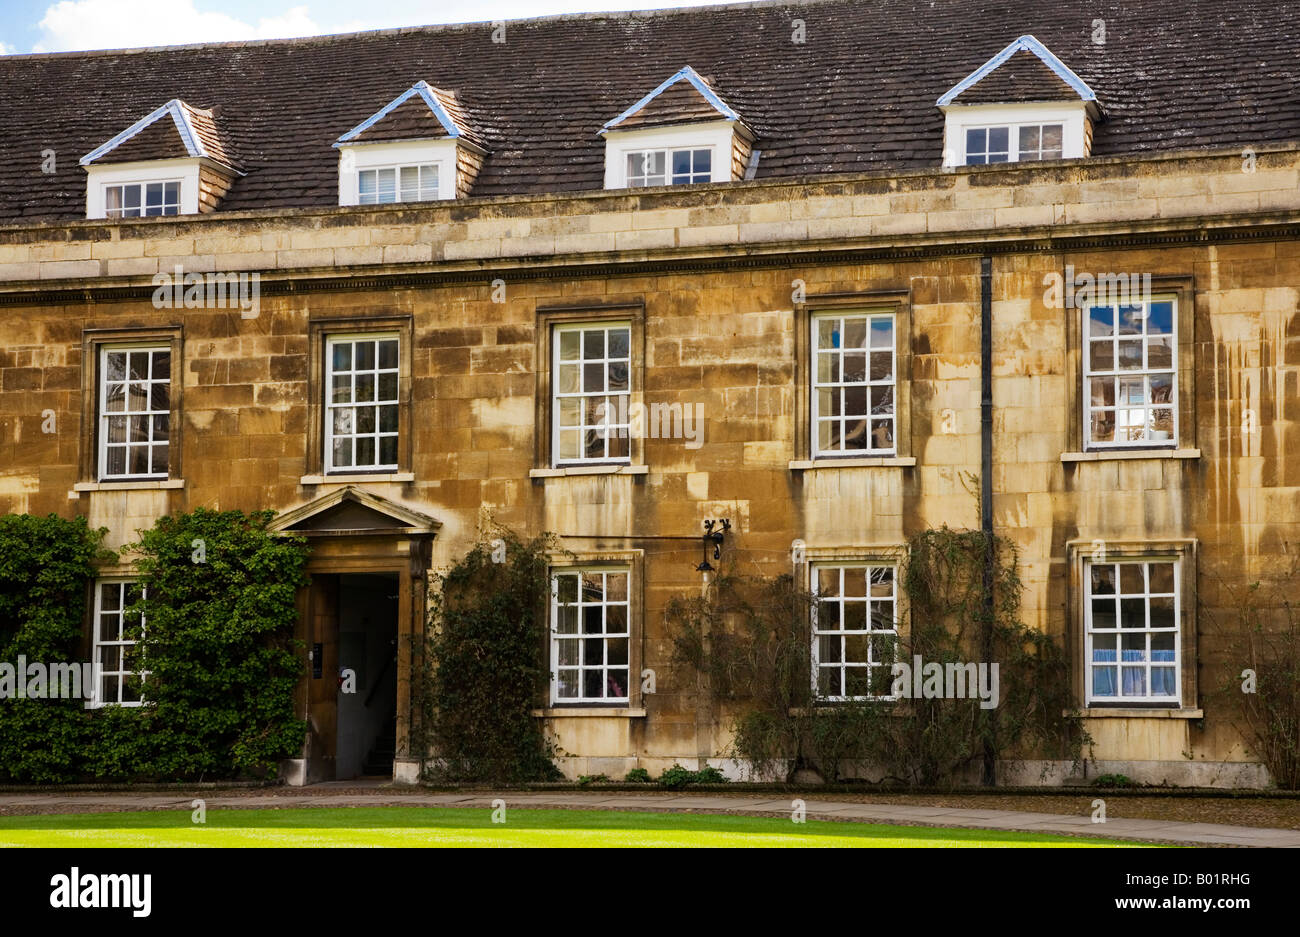 Part of First Court at Christ's College, Cambridge University, Cambridge, England, UK - Stock Image